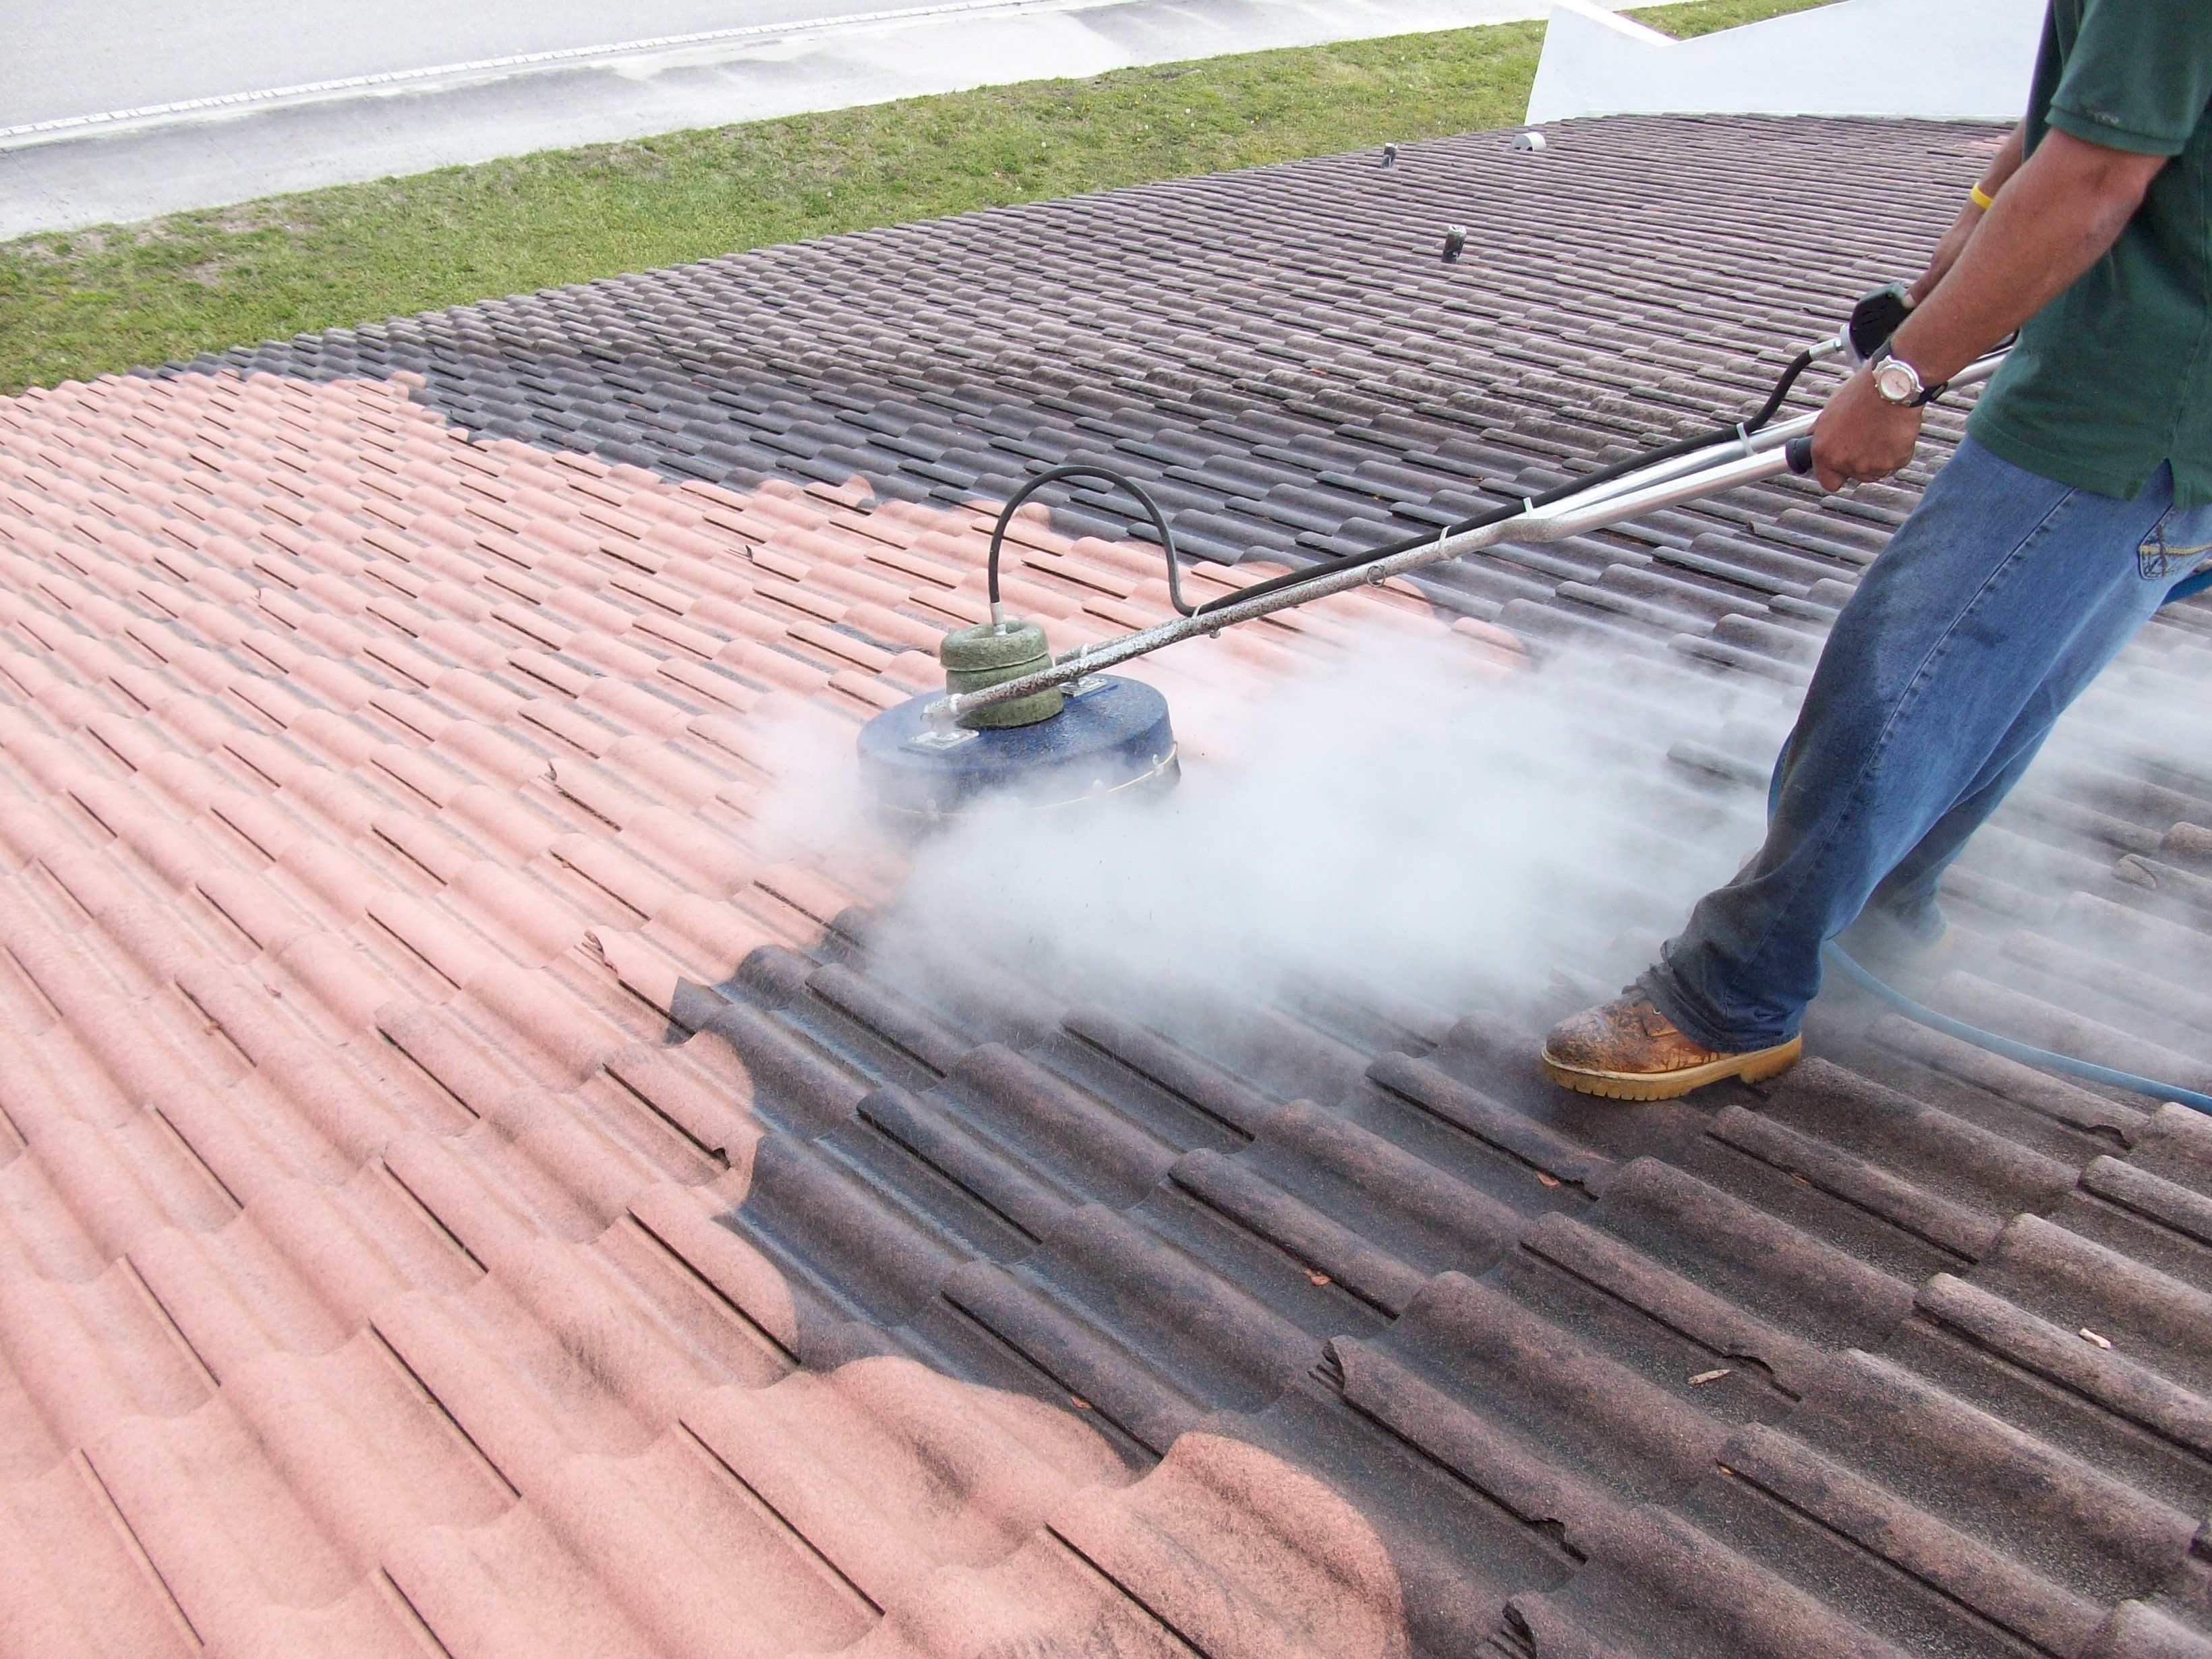 Roof Cleaning by Dan Swede | Roof cleaning, House roof, Roof